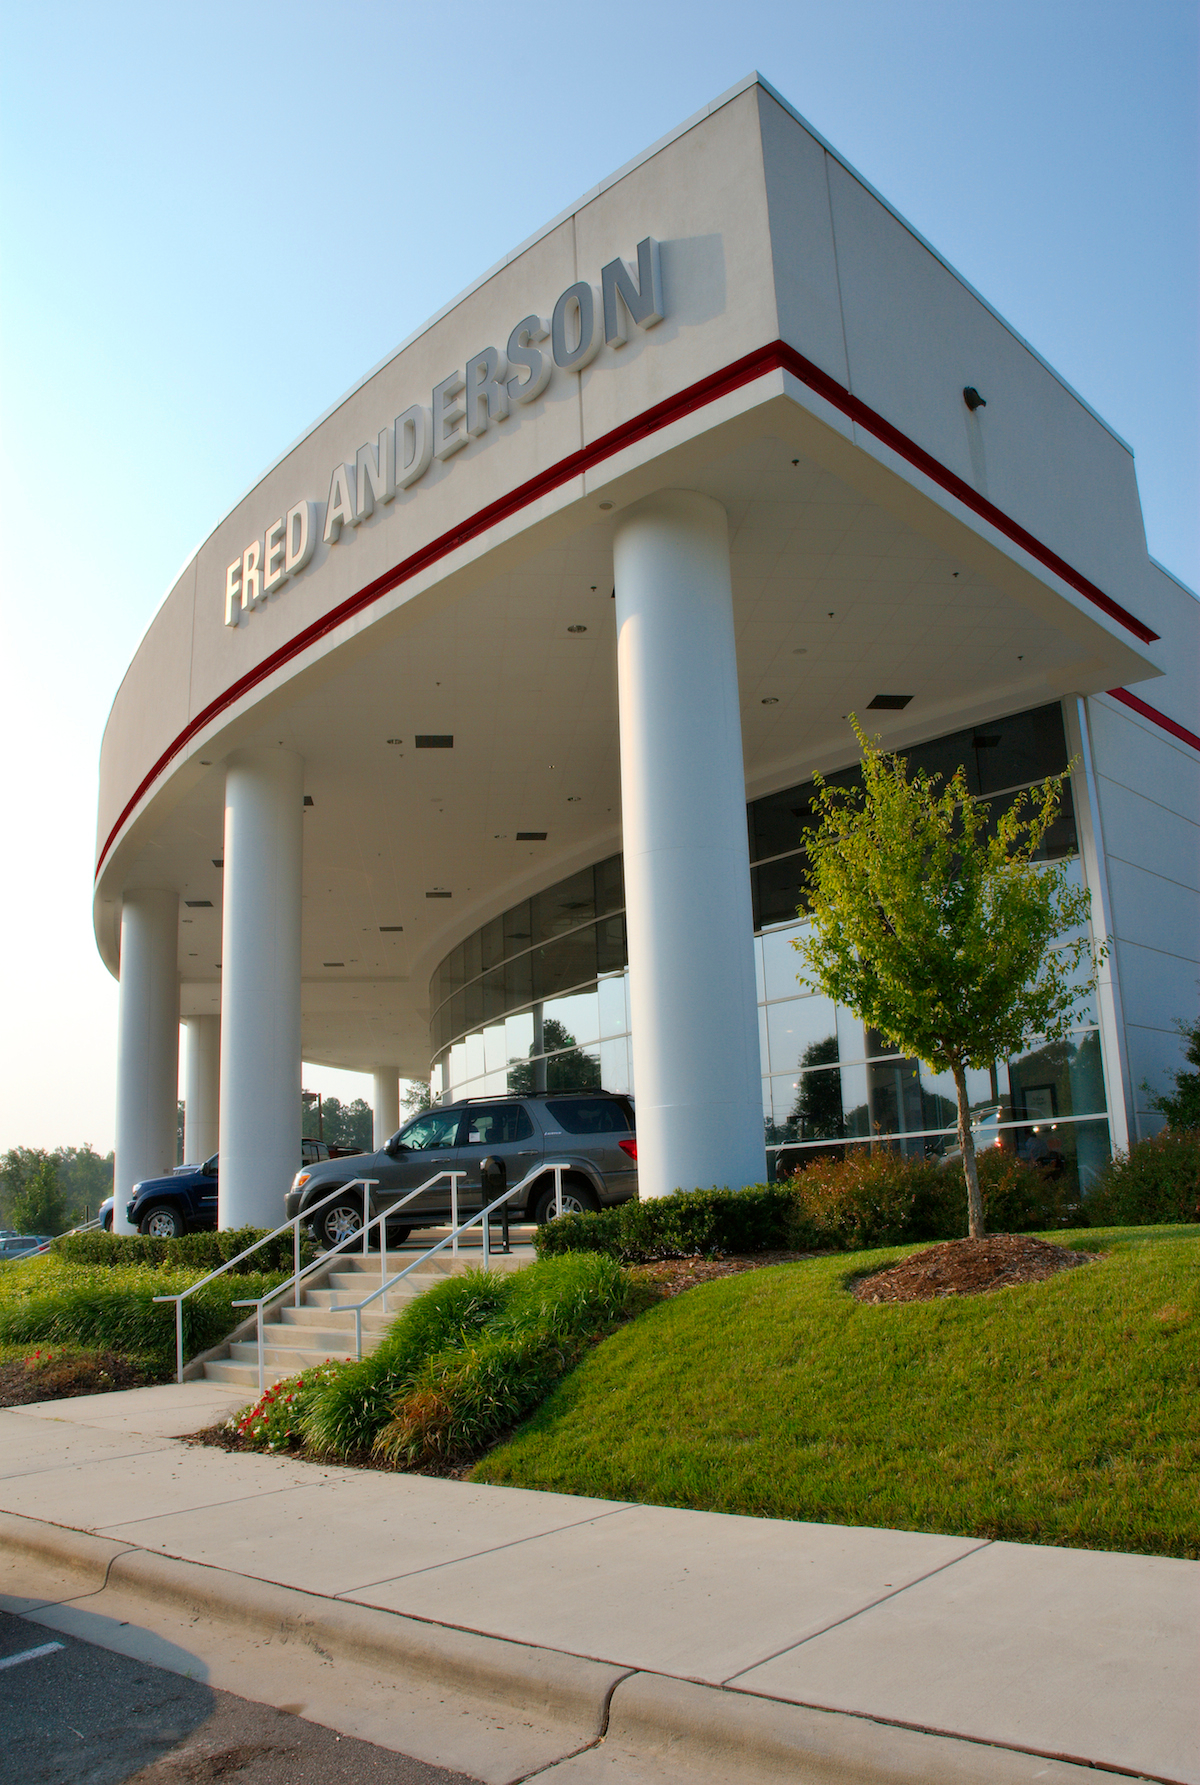 Fred Anderson Toyota, Raleigh North Carolina (NC ...